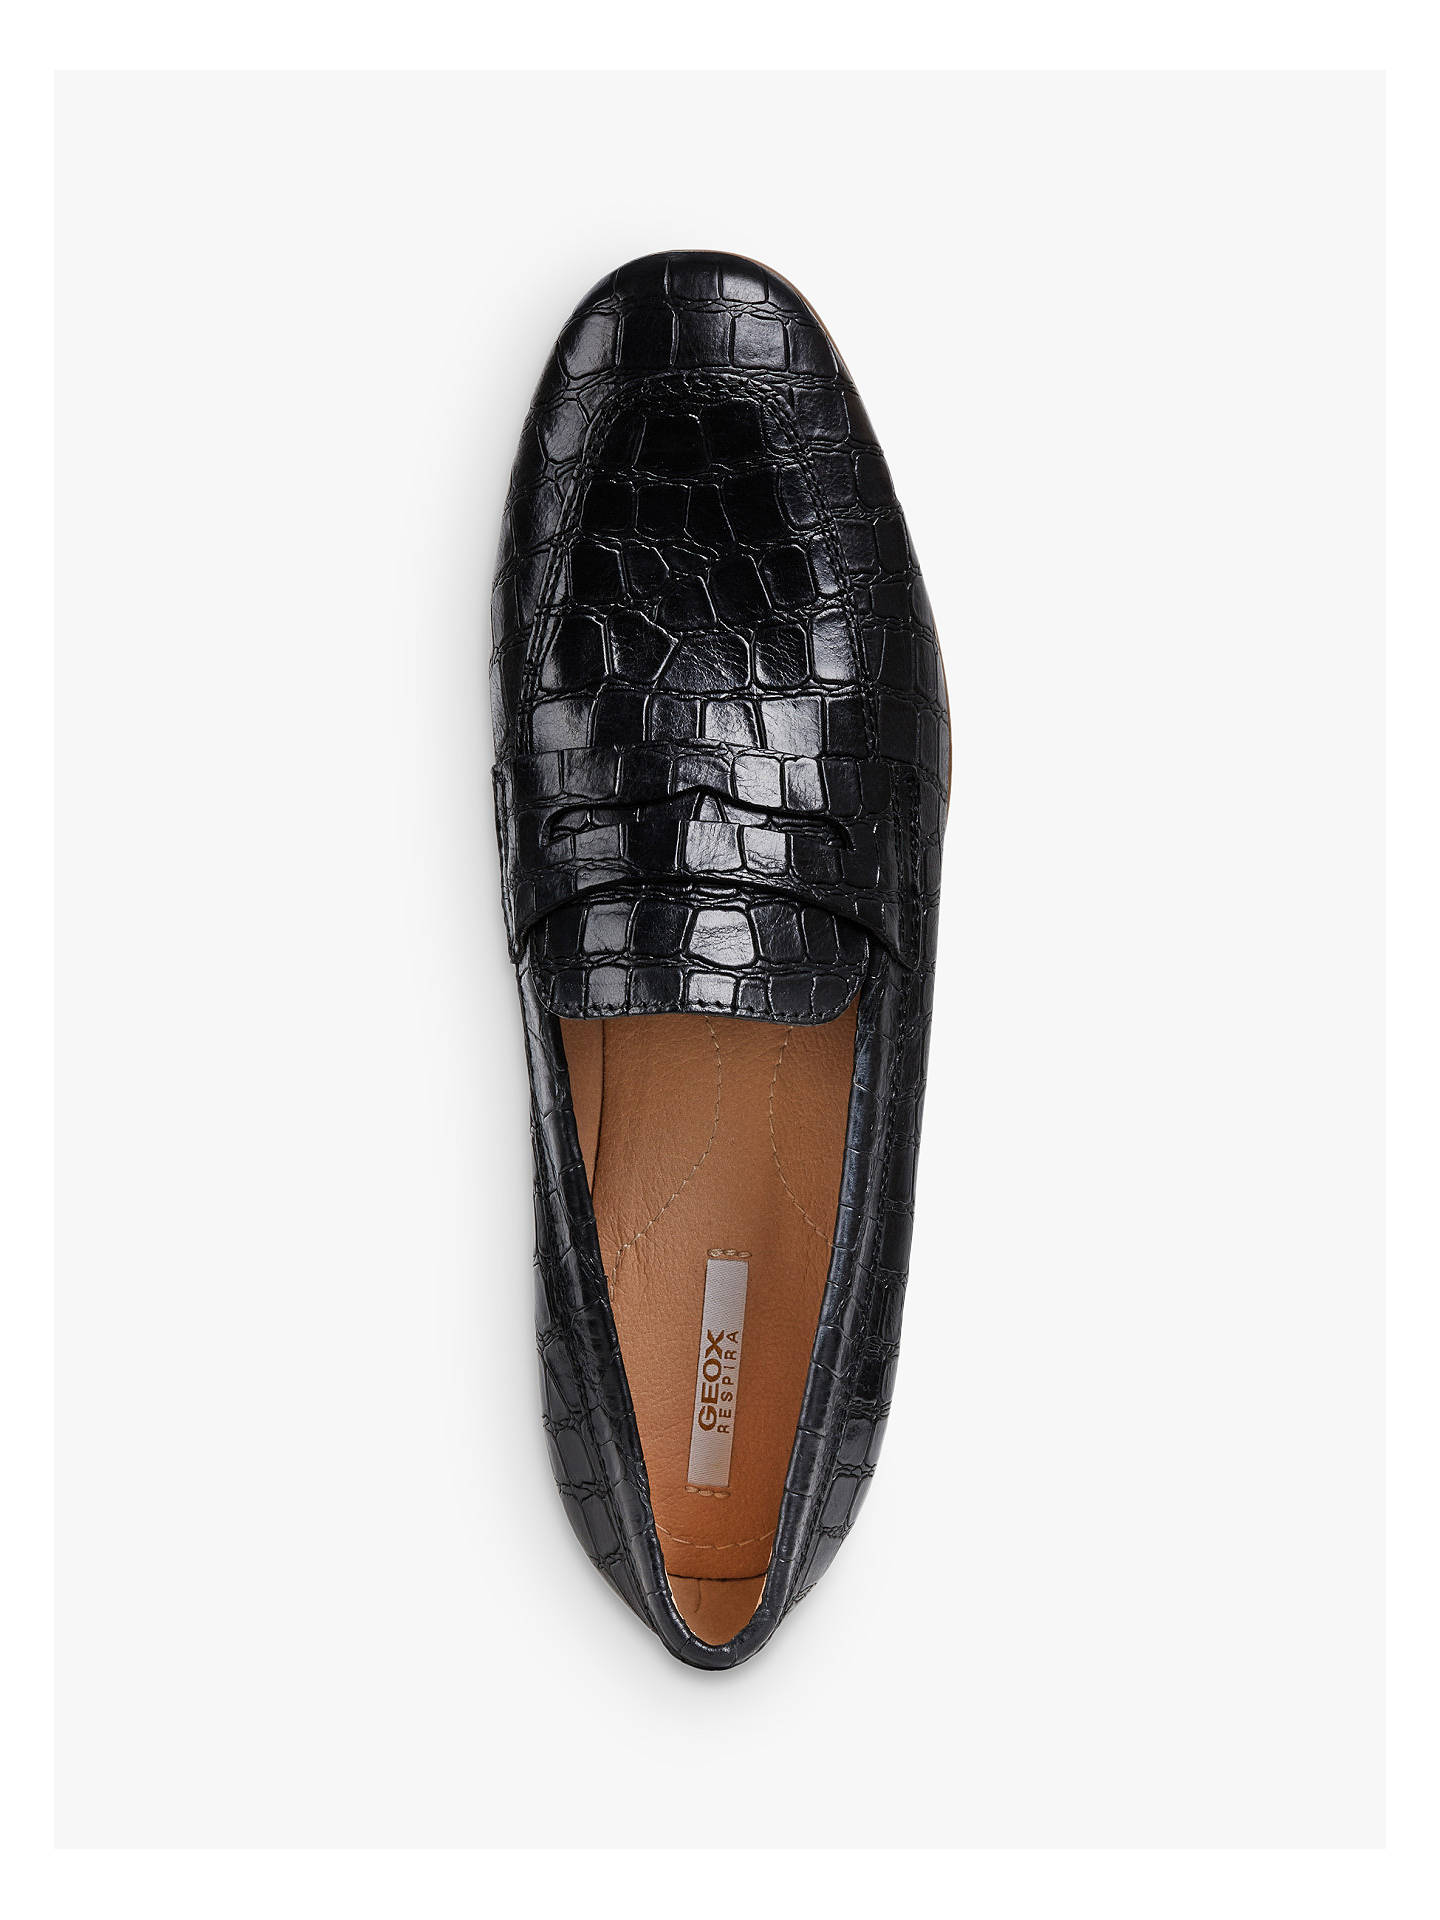 diámetro A bordo dominar  Geox Women's Marlyna Loafers at John Lewis & Partners